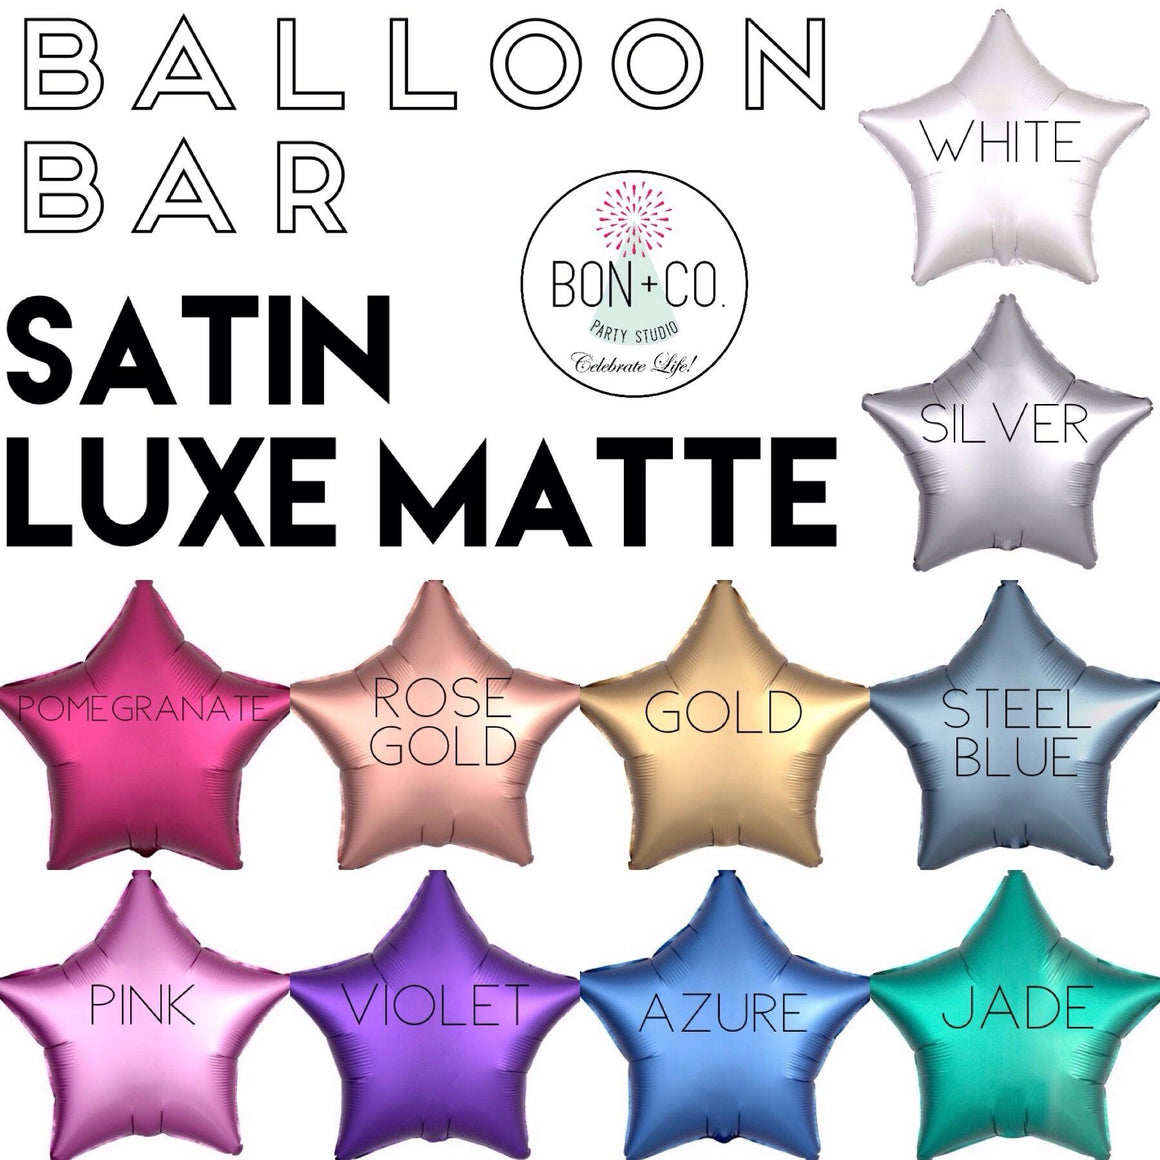 BALLOON BAR - STAR SATIN LUXE, Balloons, Anagram - Bon + Co. Party Studio